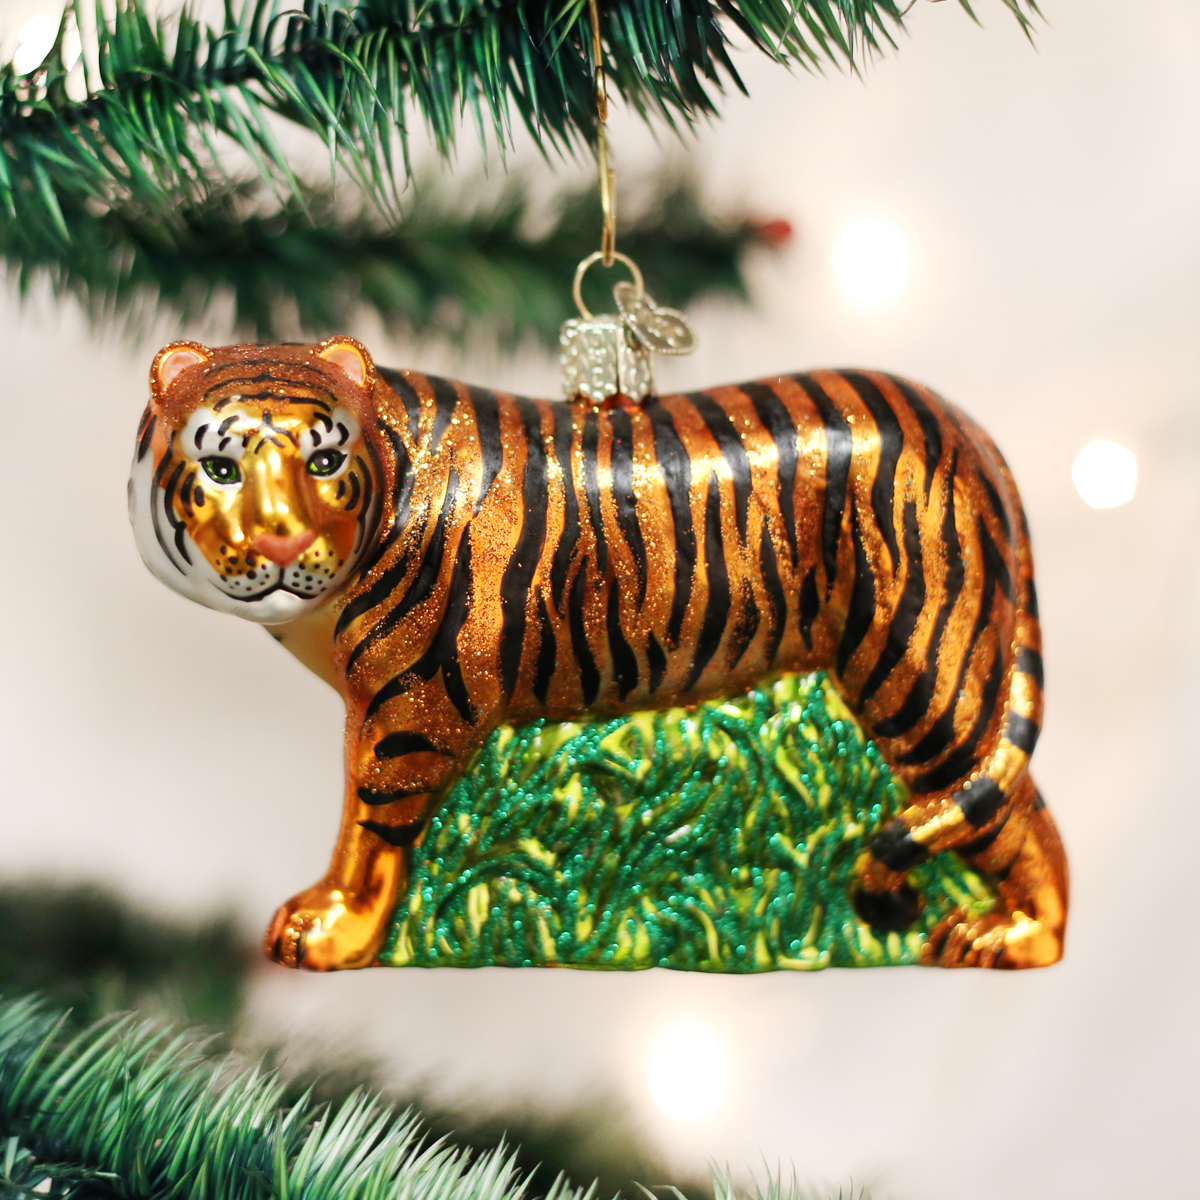 Old World Christmas OWC Tiger Ornament